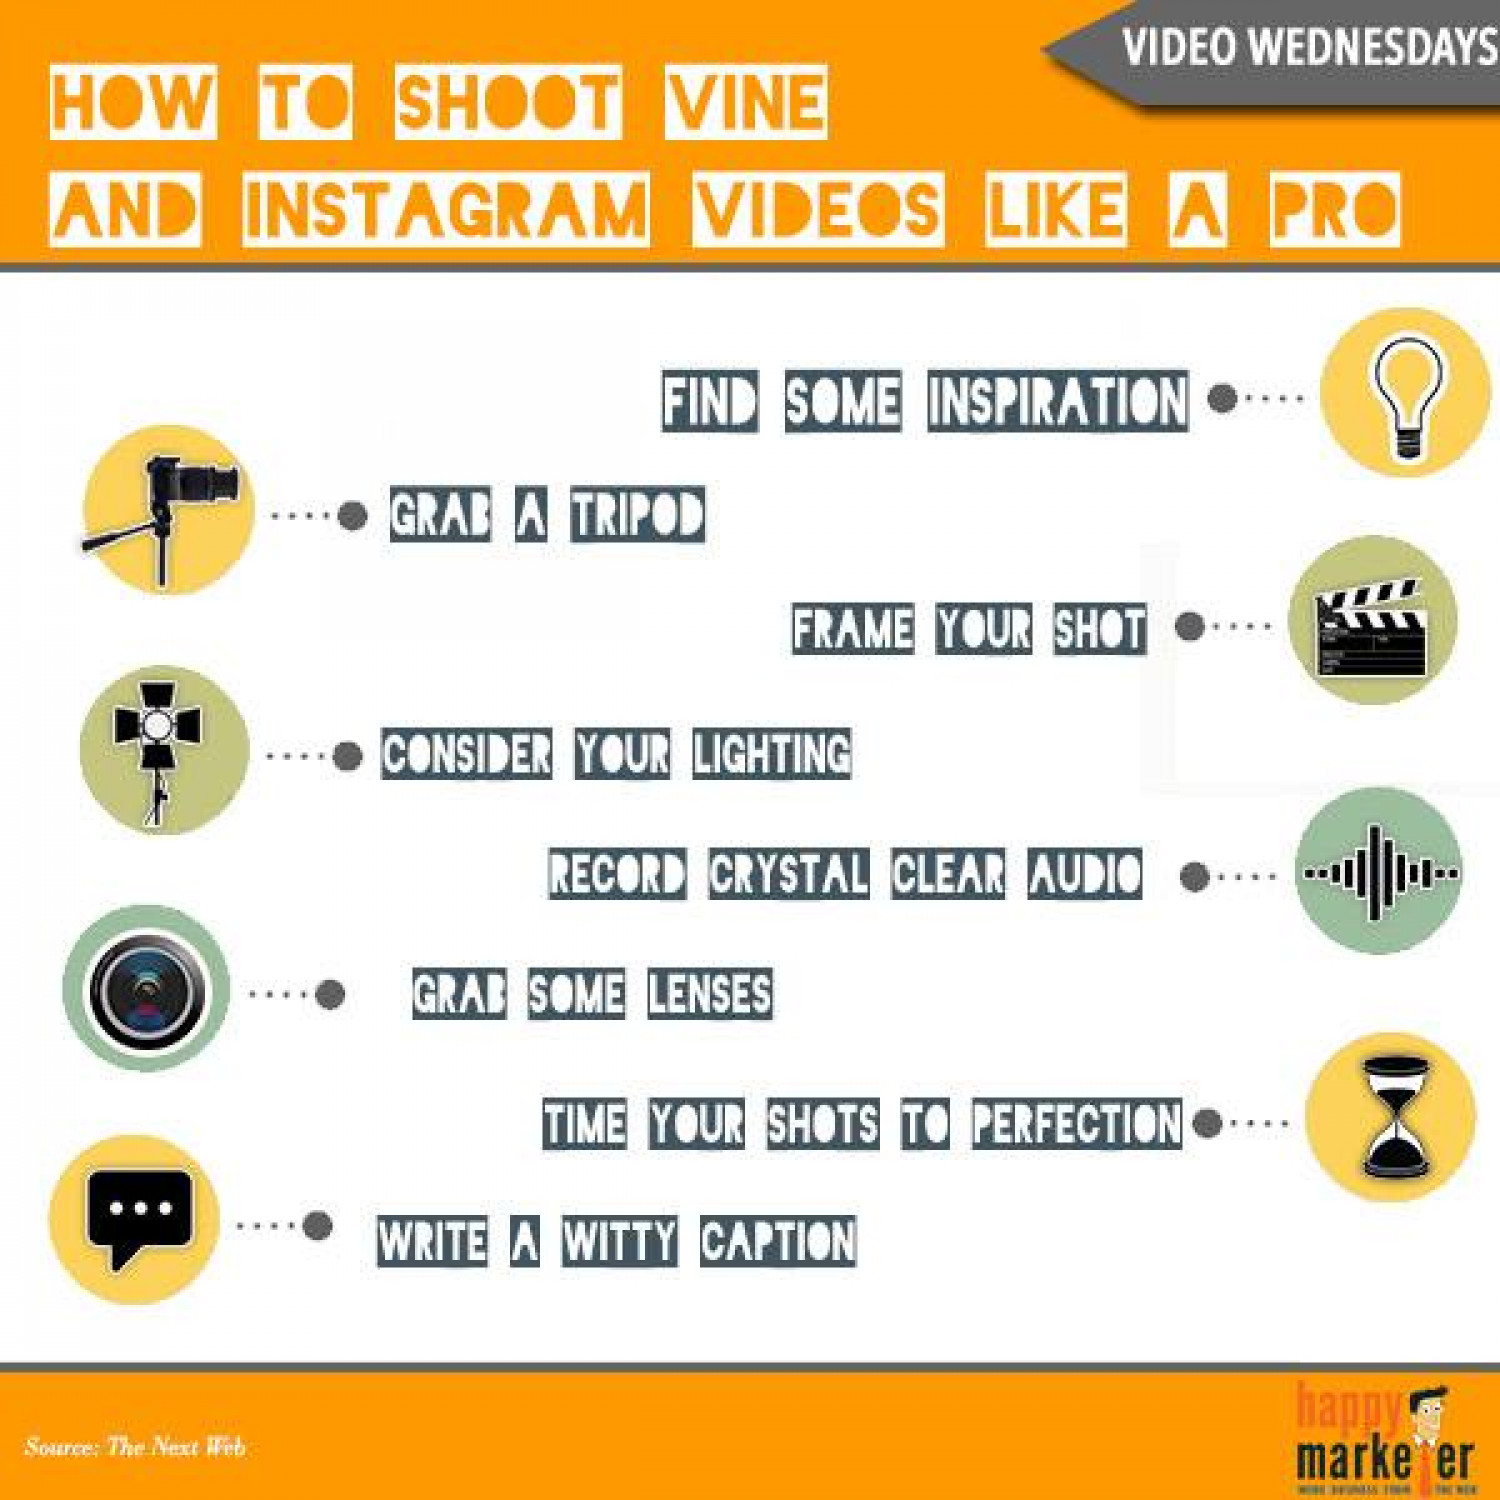 Shoot Vine And Instagram Videos Like A Pro Infographic